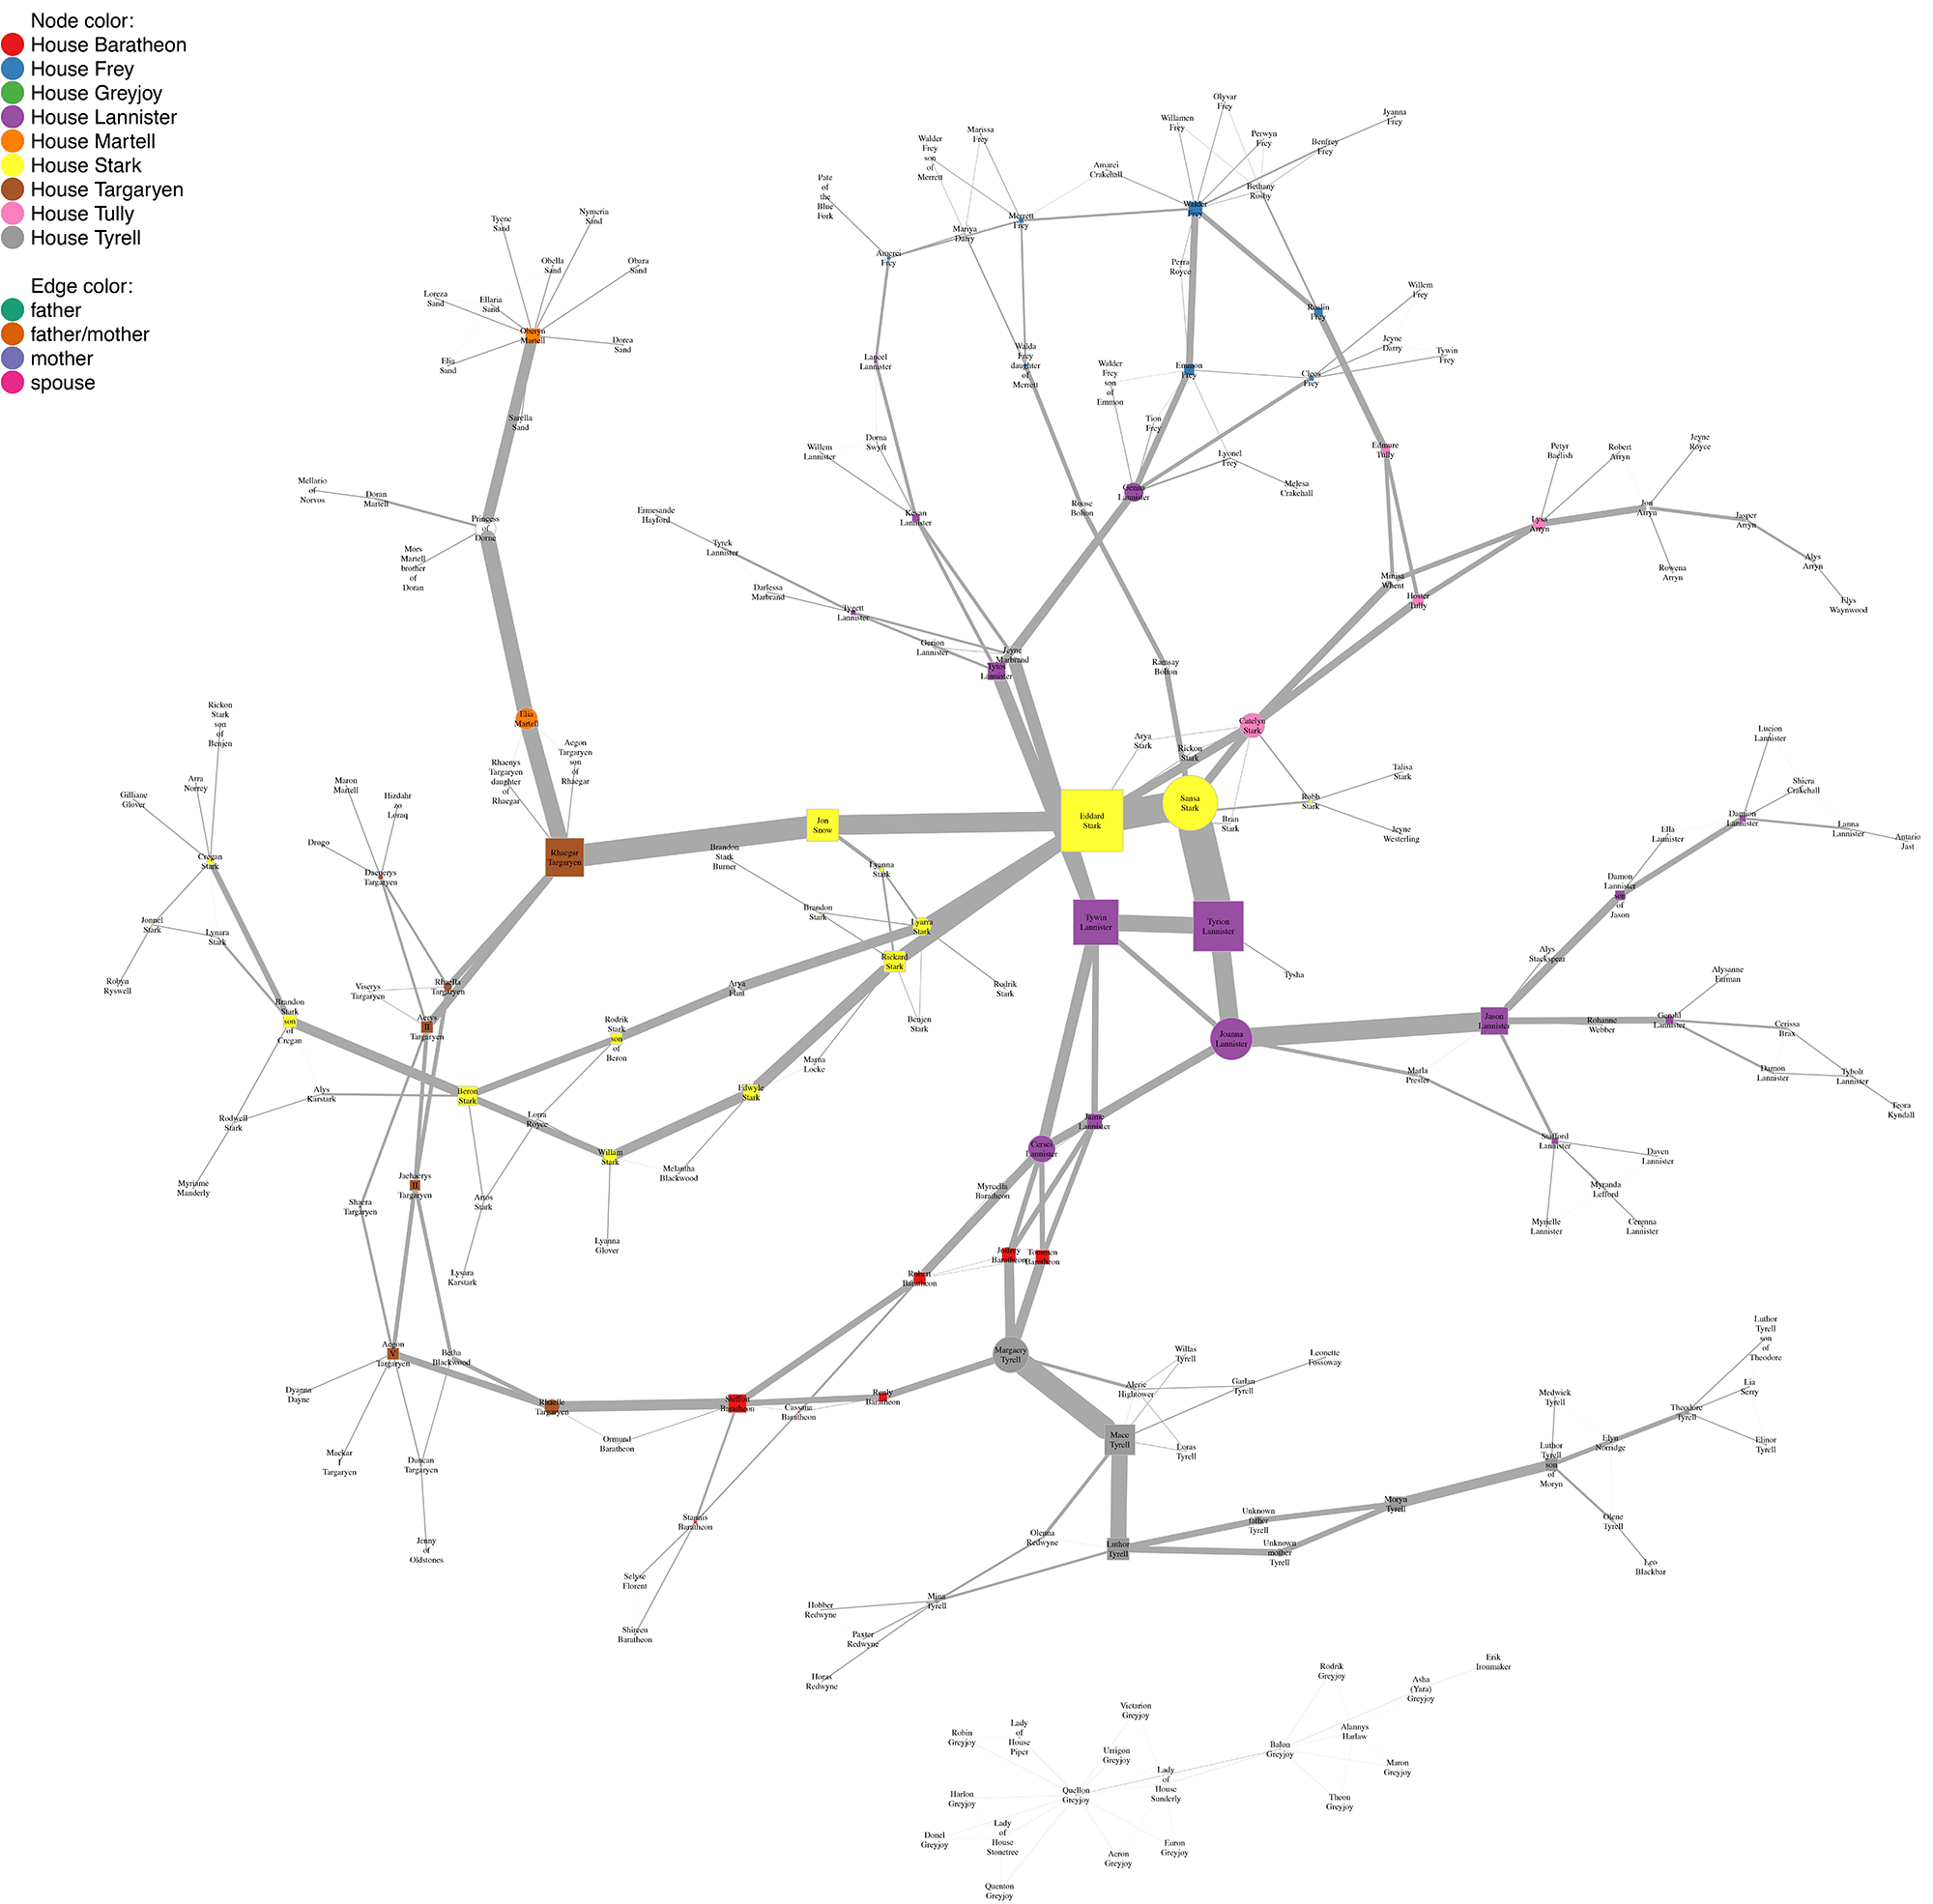 Network analysis of Game of Thrones